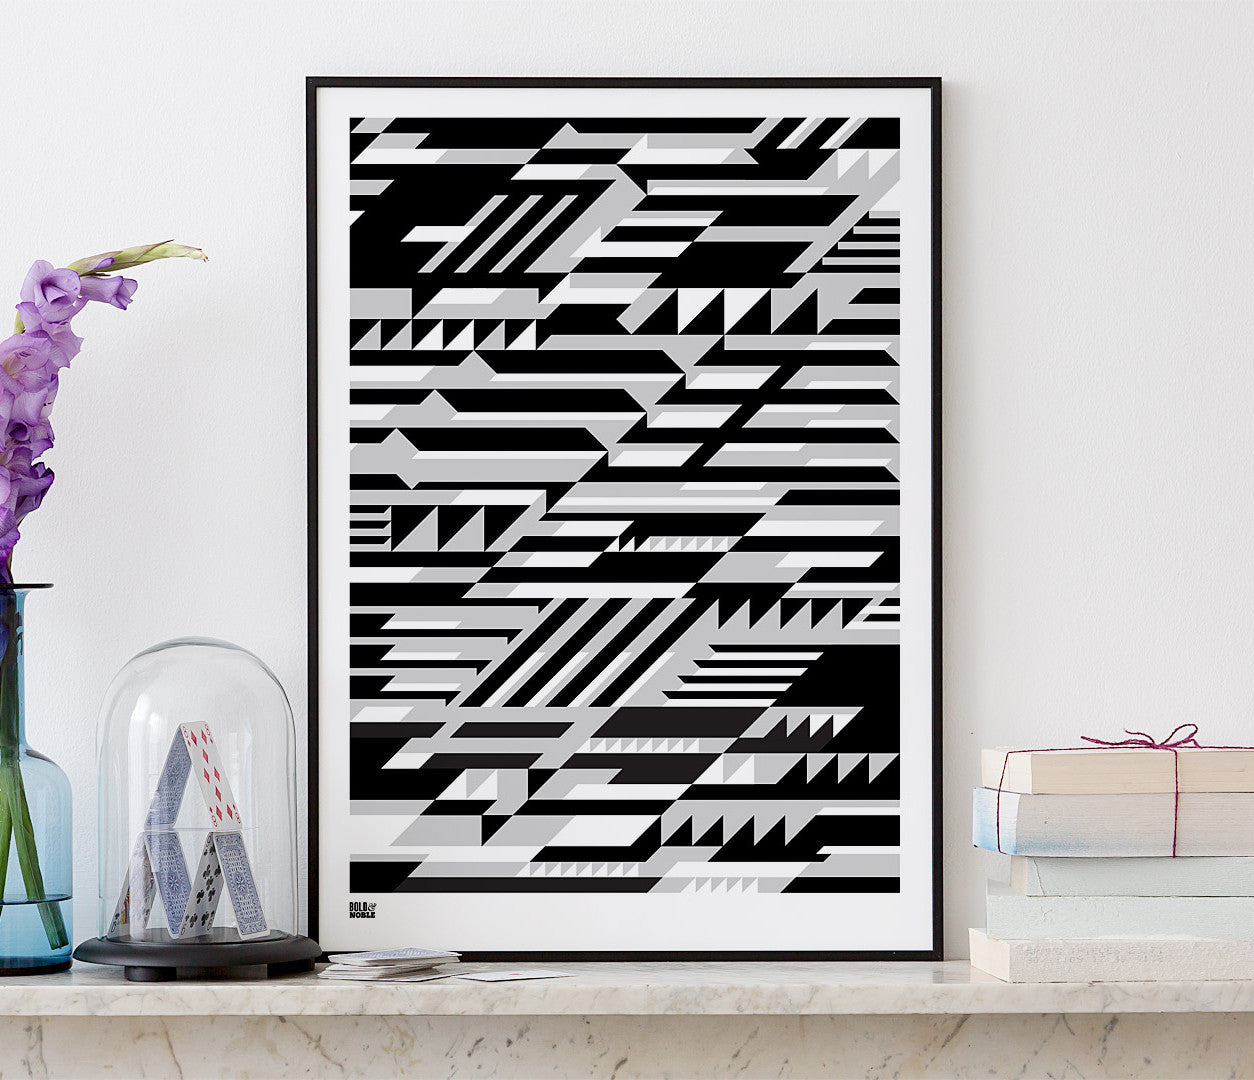 Wall Art ideas: Economical Screen Prints, Faster Geometric Screen Print in black and grey